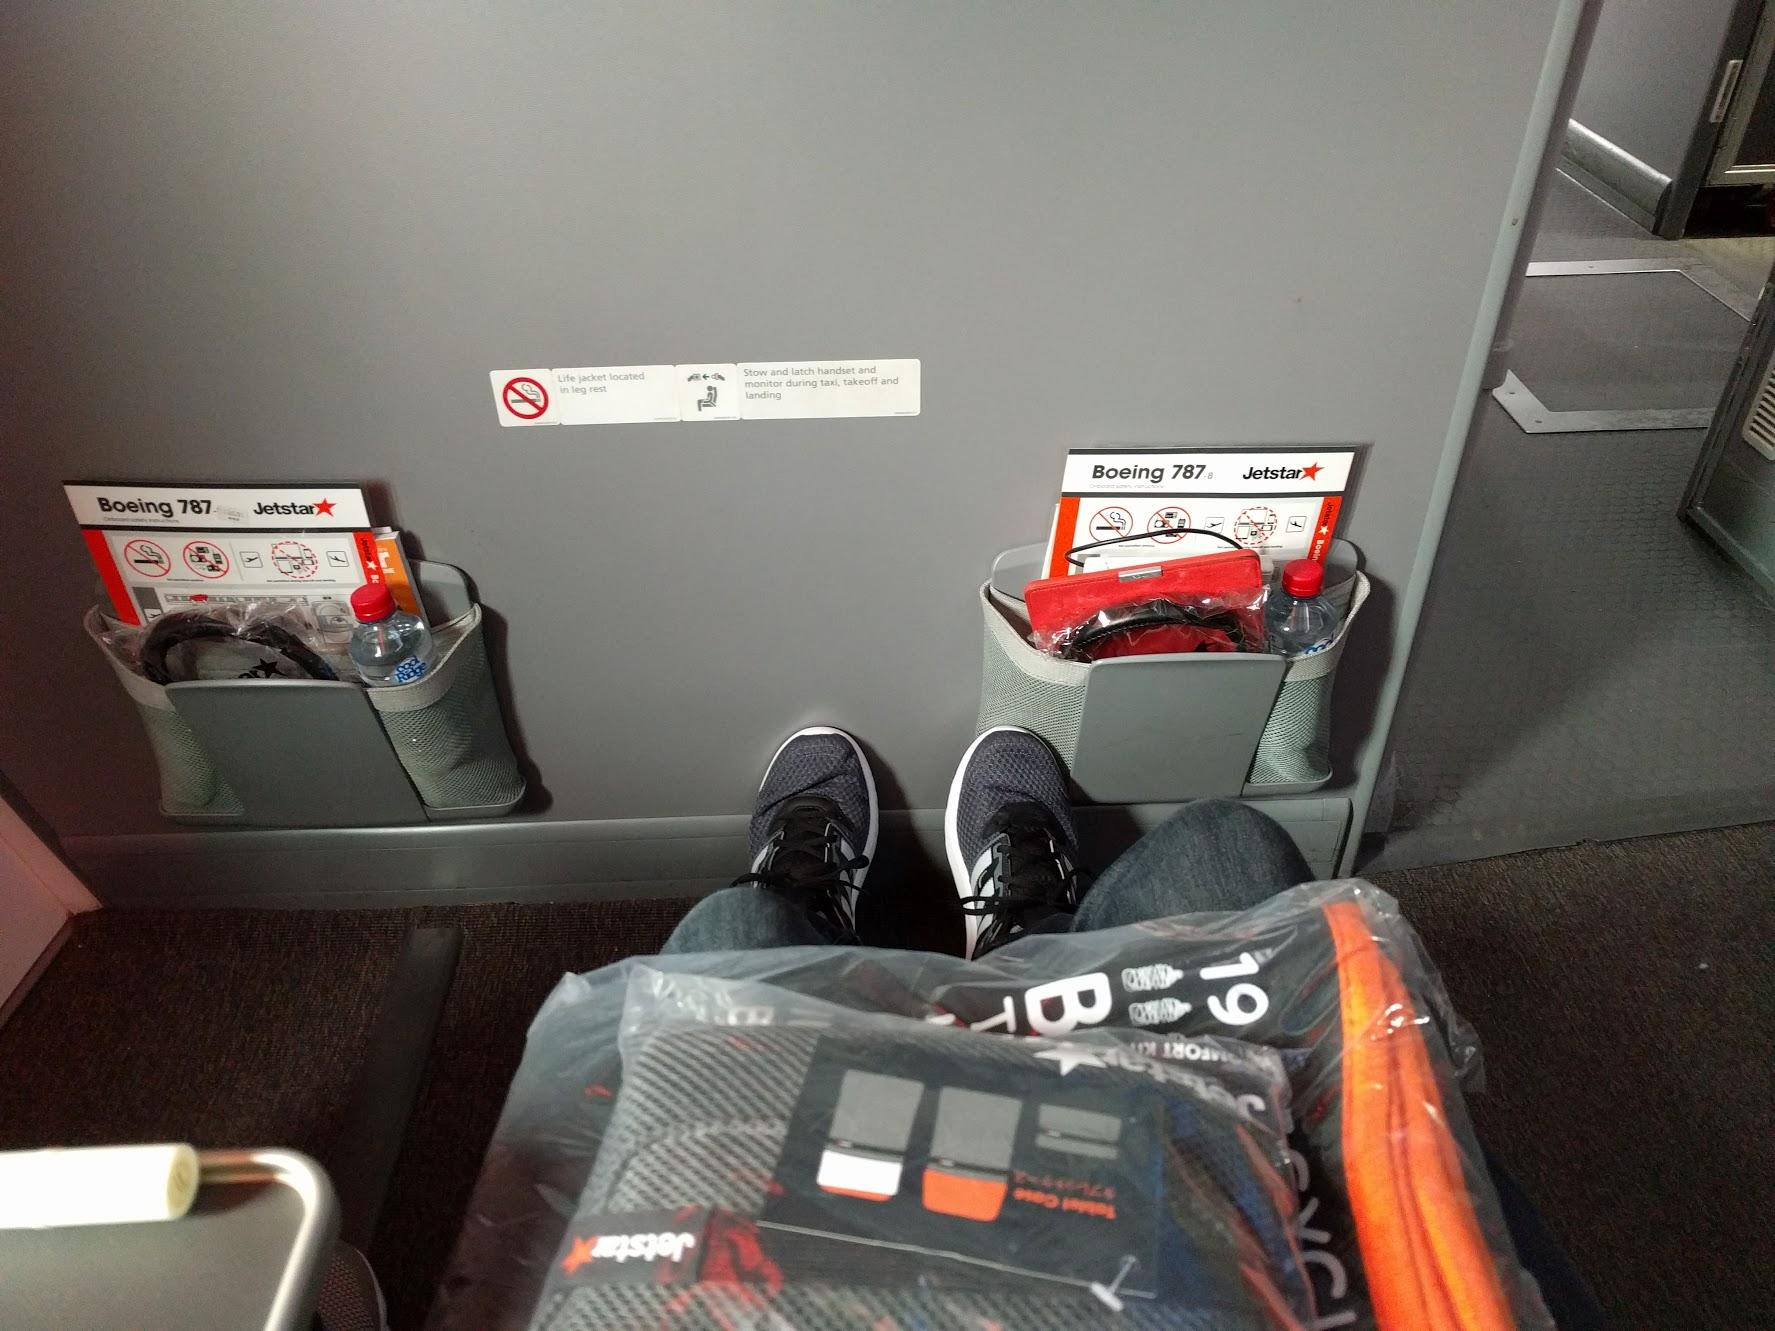 Jetstar Legroom around 1A and 1C